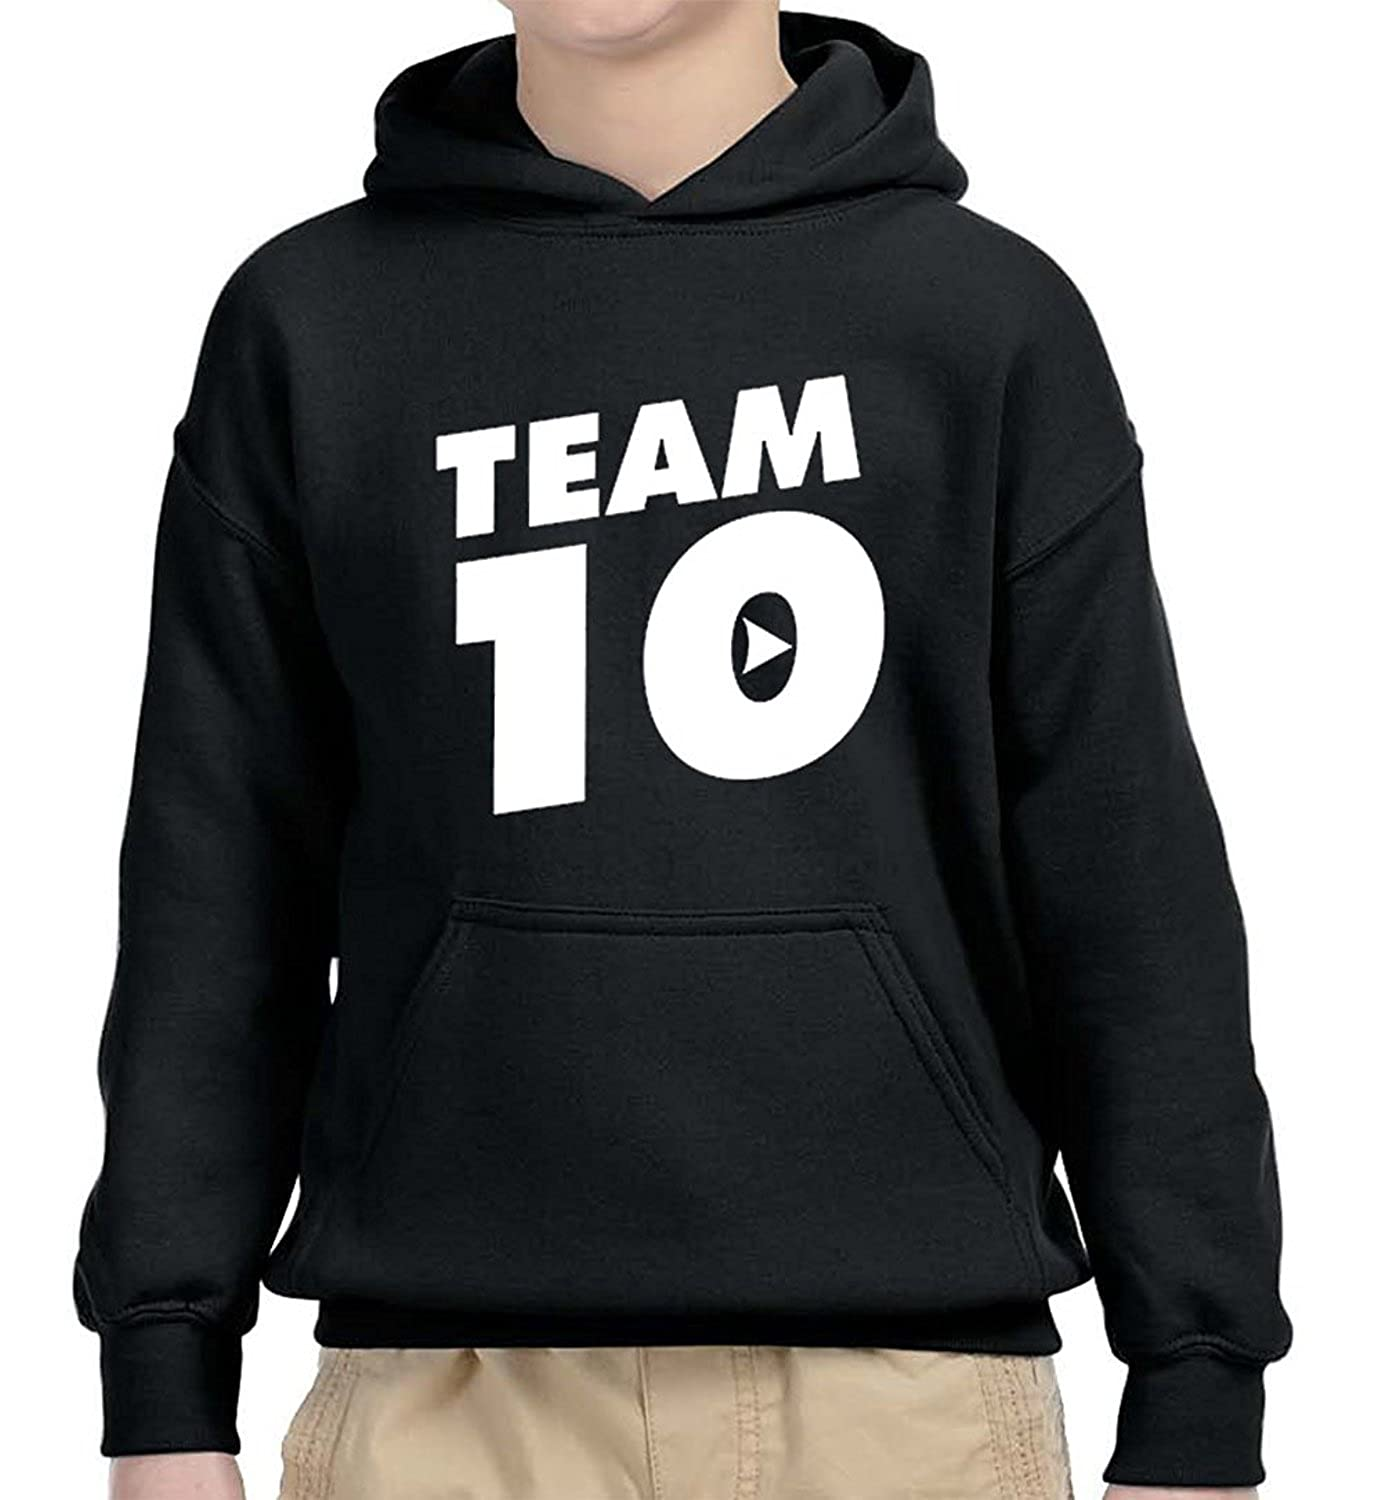 Hussain Tees Youth Team 10 Logan Paul and Jake Paul Kids Sweatshirt Hoodie